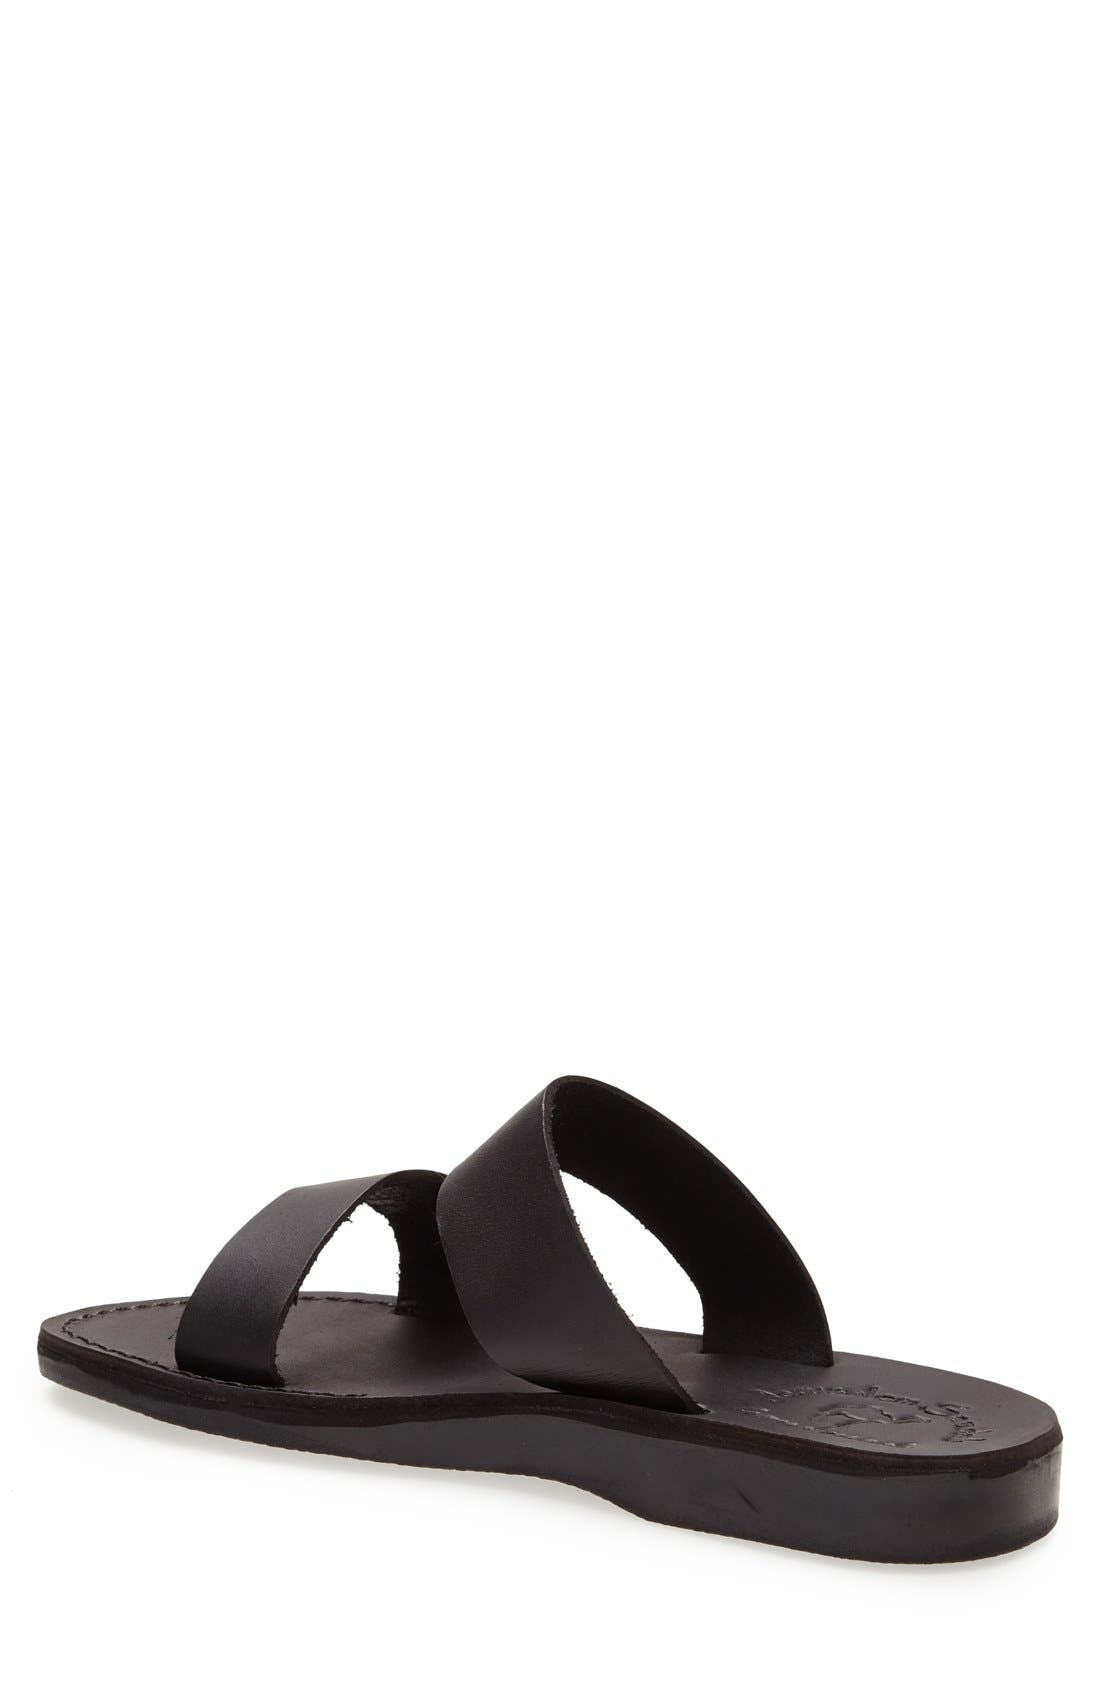 'Aviv' Leather Sandal,                             Alternate thumbnail 2, color,                             Black